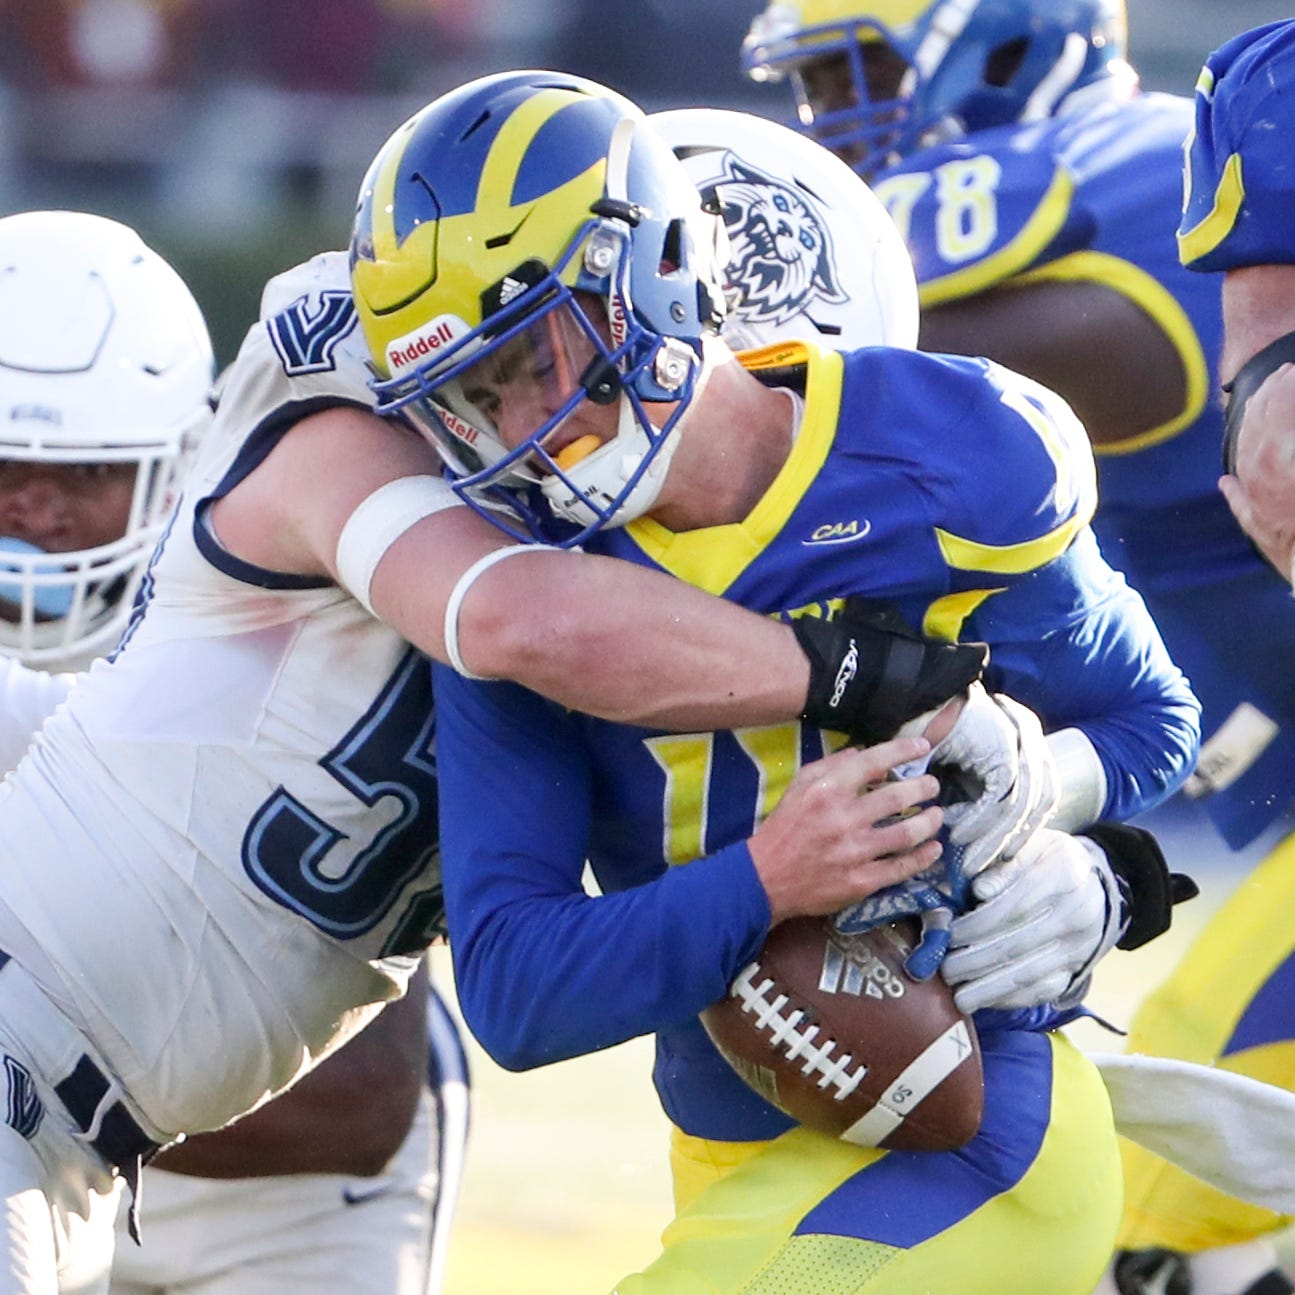 Delaware football: Villanova keeps curse alive, trounces Blue Hens